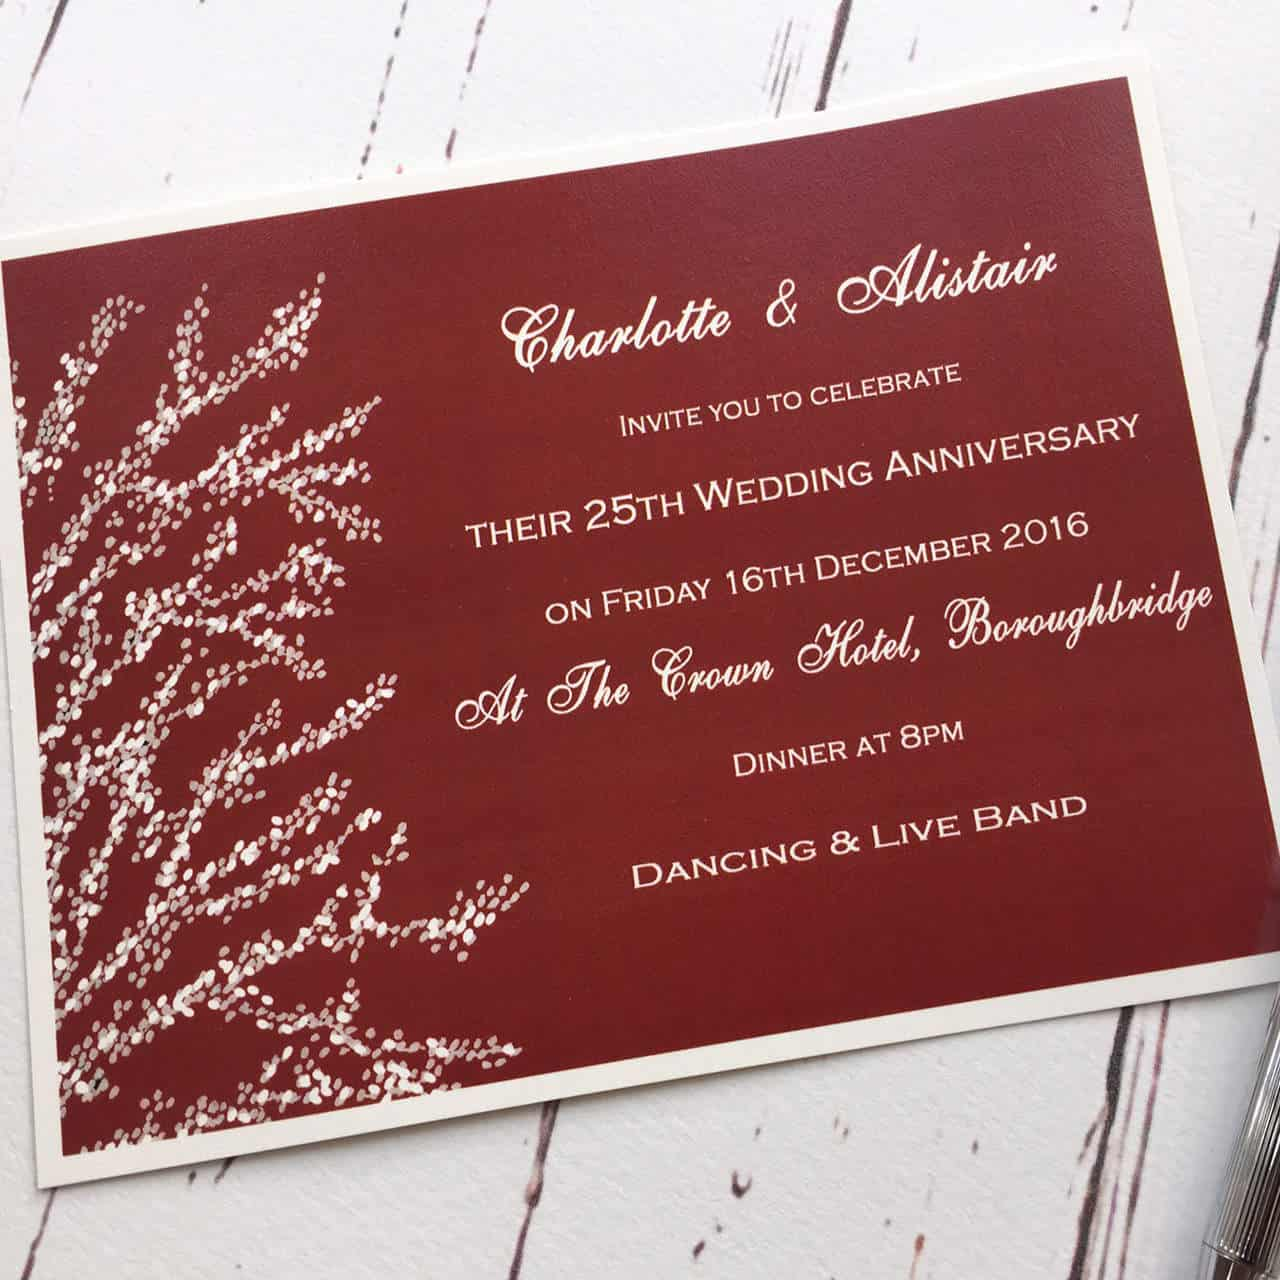 Bespoke Invitations deposit |